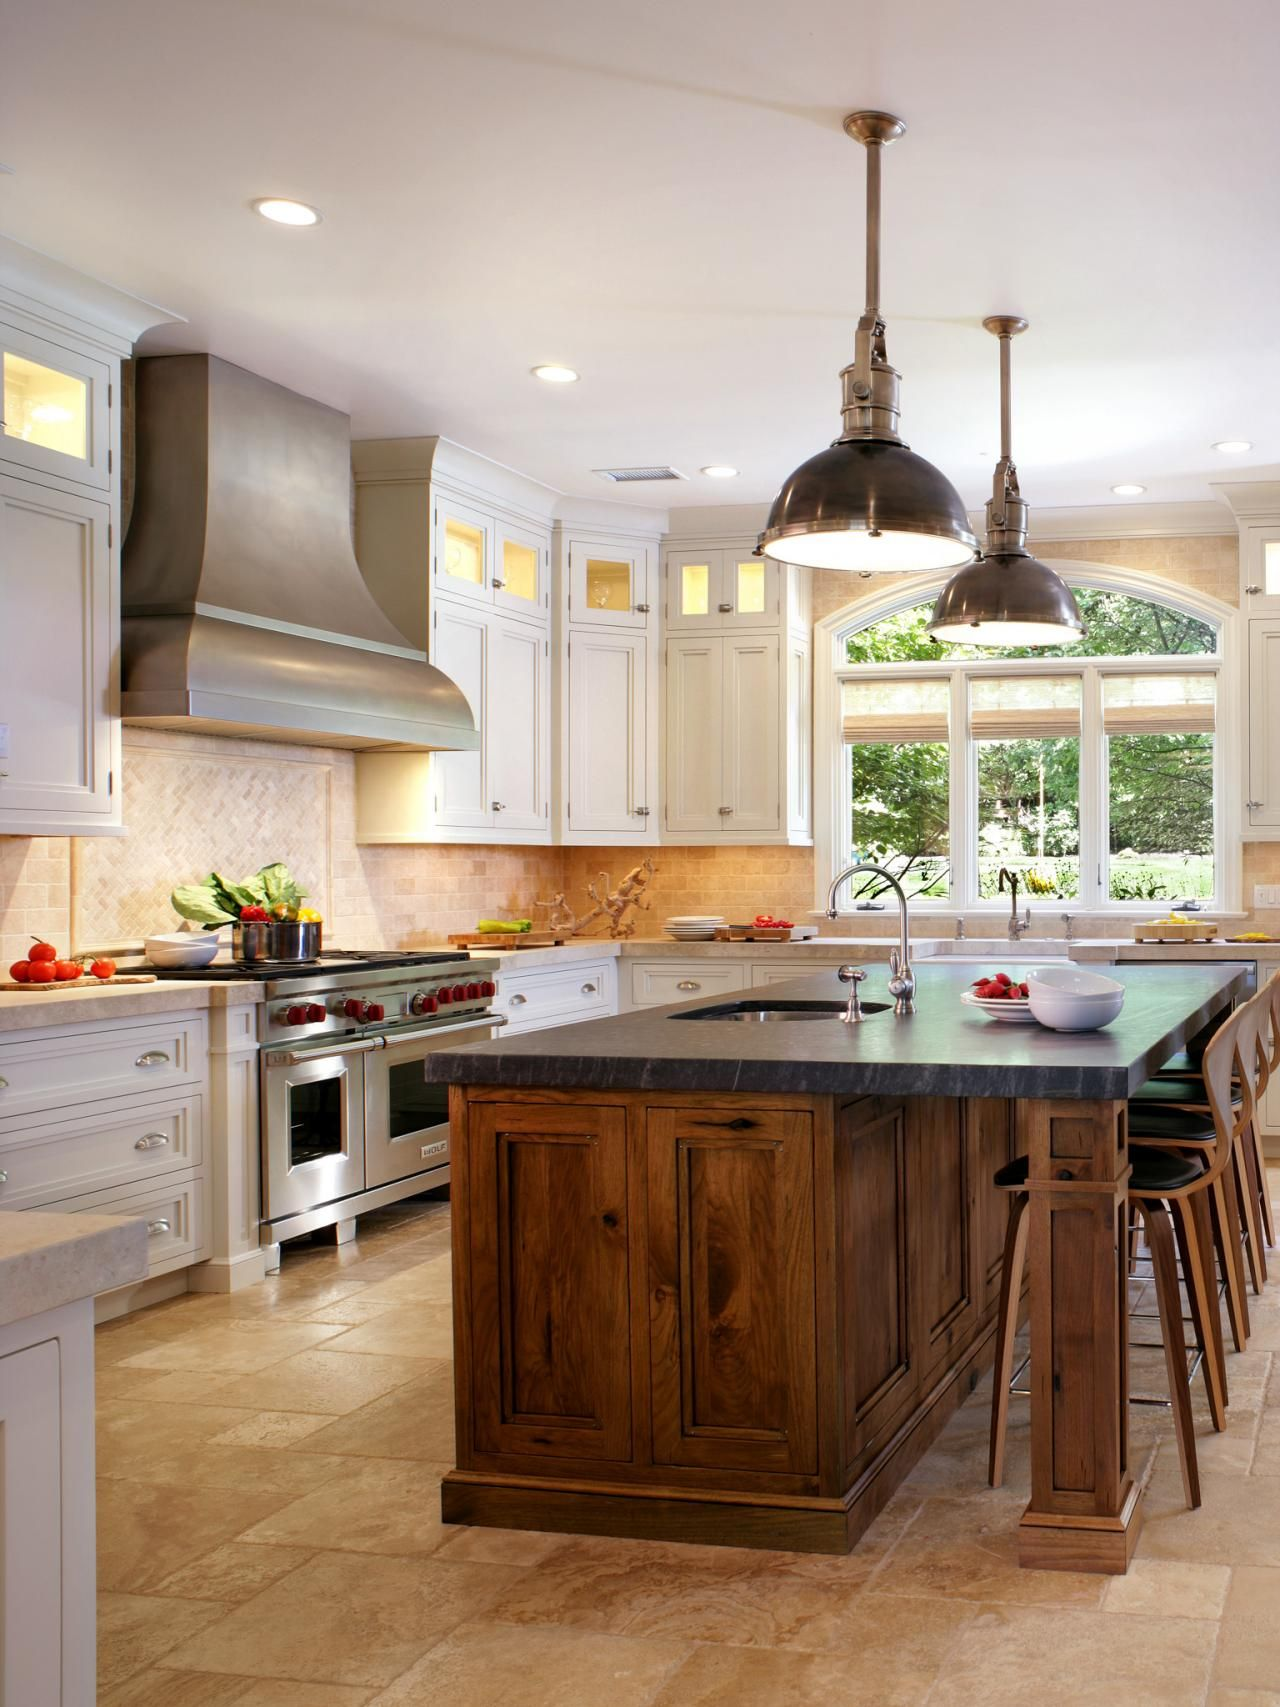 Photos Walnut Kitchen Cabinets Kitchen Cabinets Light Wood Rustic Kitchen